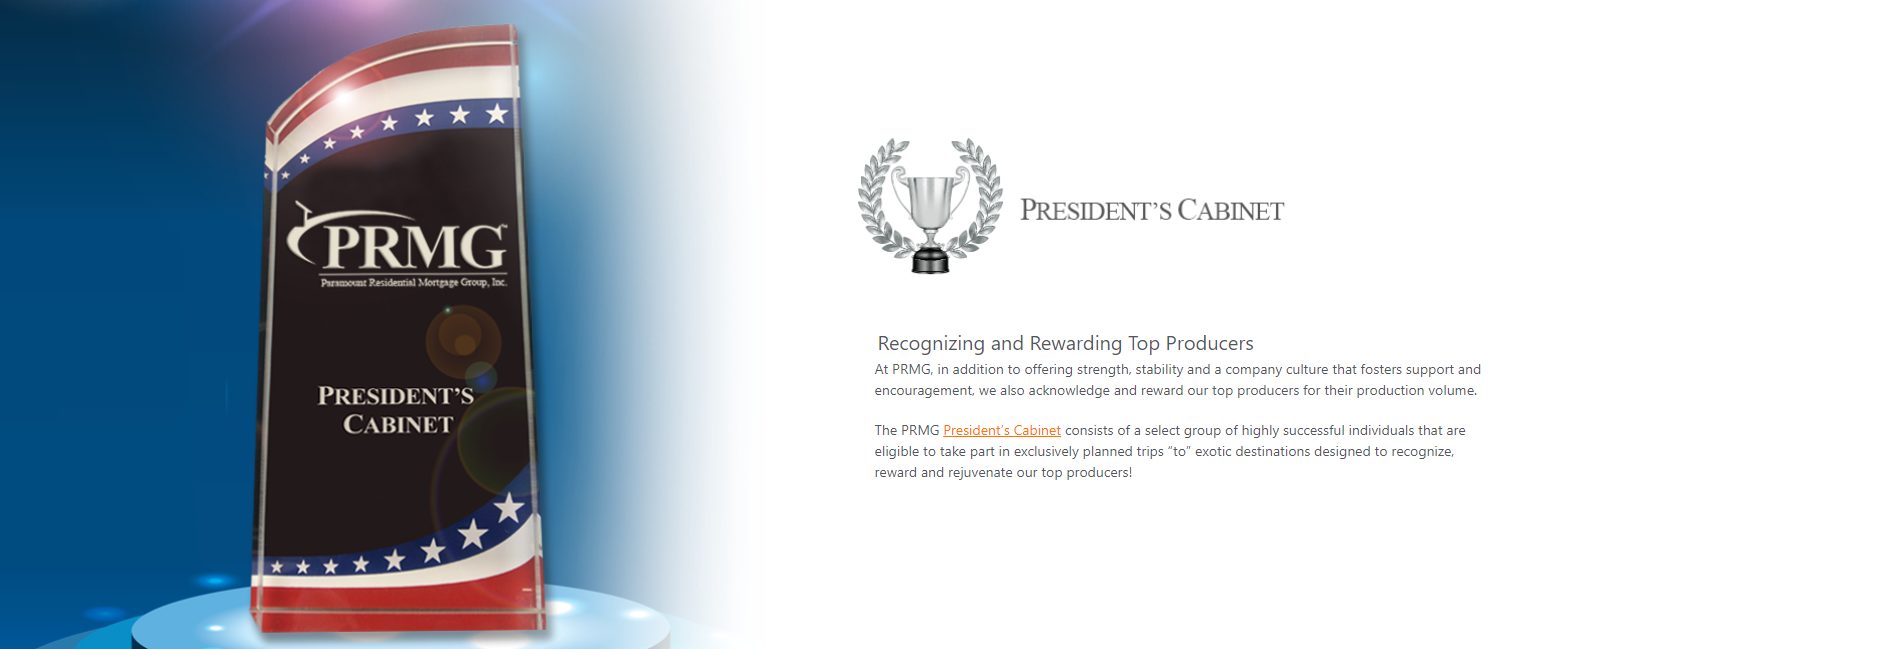 Recognizing and Rewarding Top Producers,At PRMG, in addition to offering strength, stability and a company culture that fosters support and<br> encouragement, we also acknowledge and reward our top producers for their production volume.